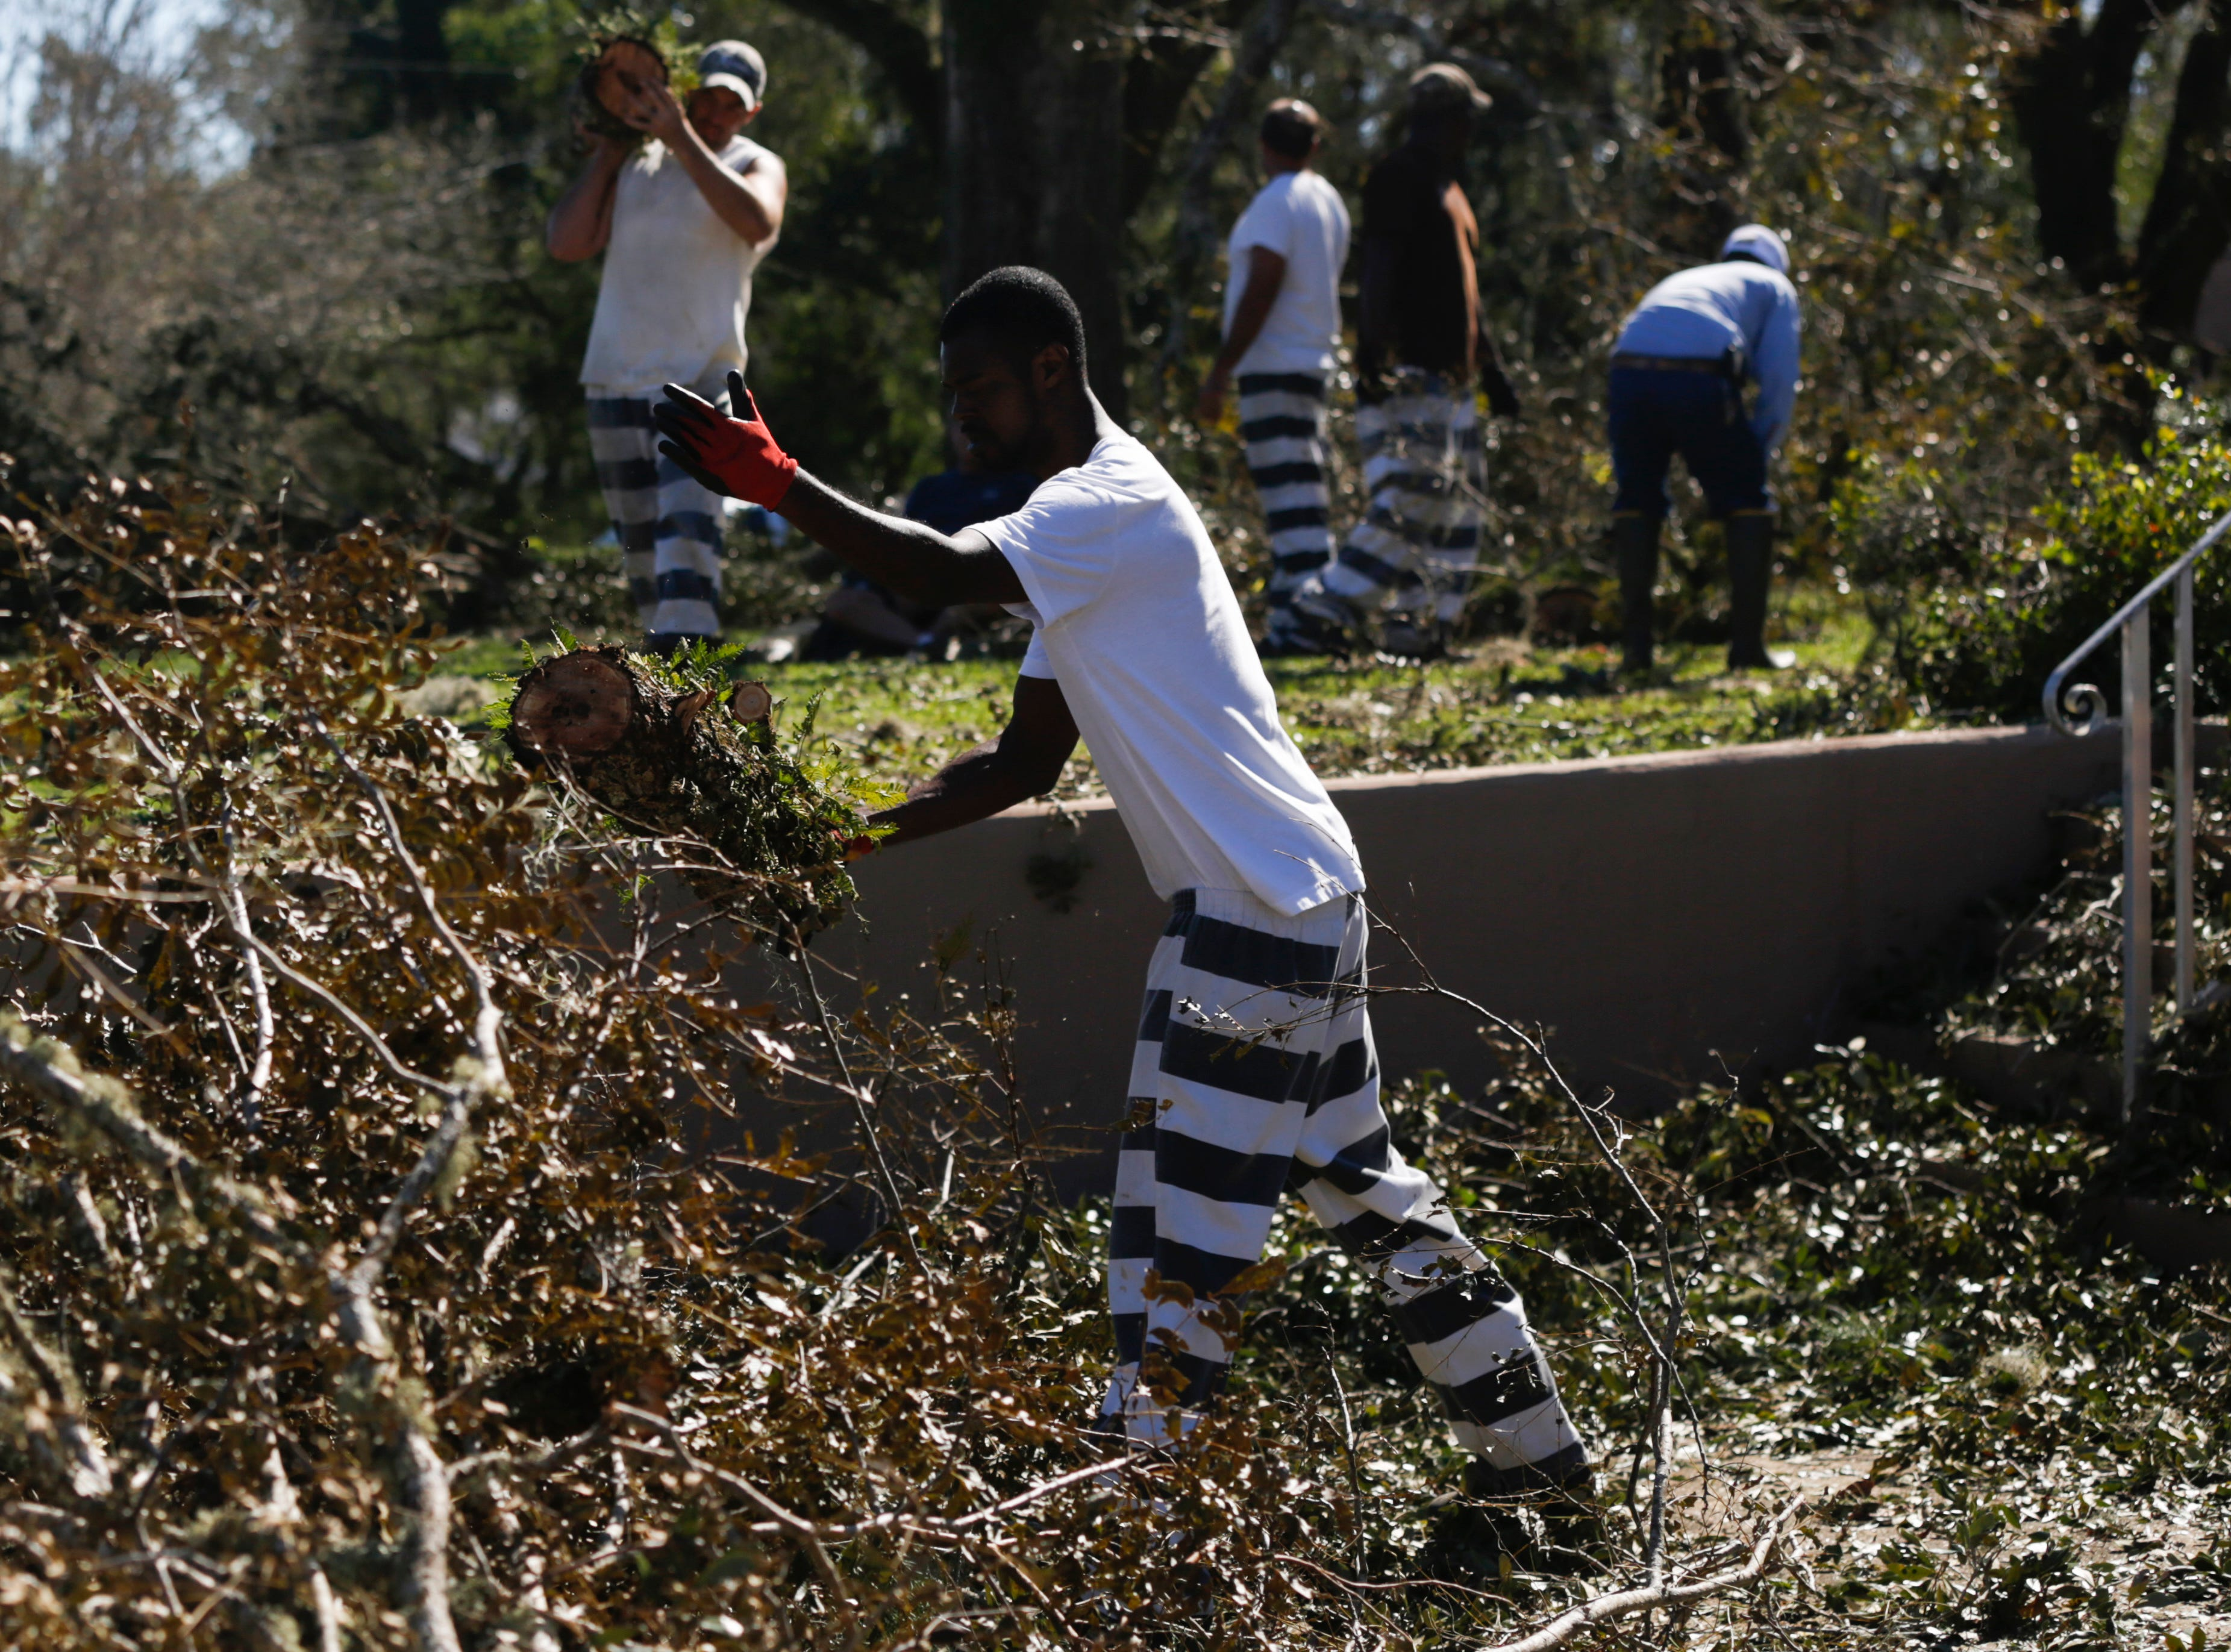 Calhoun County jail inmate Taurus Black helps to clear debris from the front of the Calhoun County Court House in Blountstown, Fla. in the aftermath of Hurricane Michael Friday, Oct. 12, 2018.